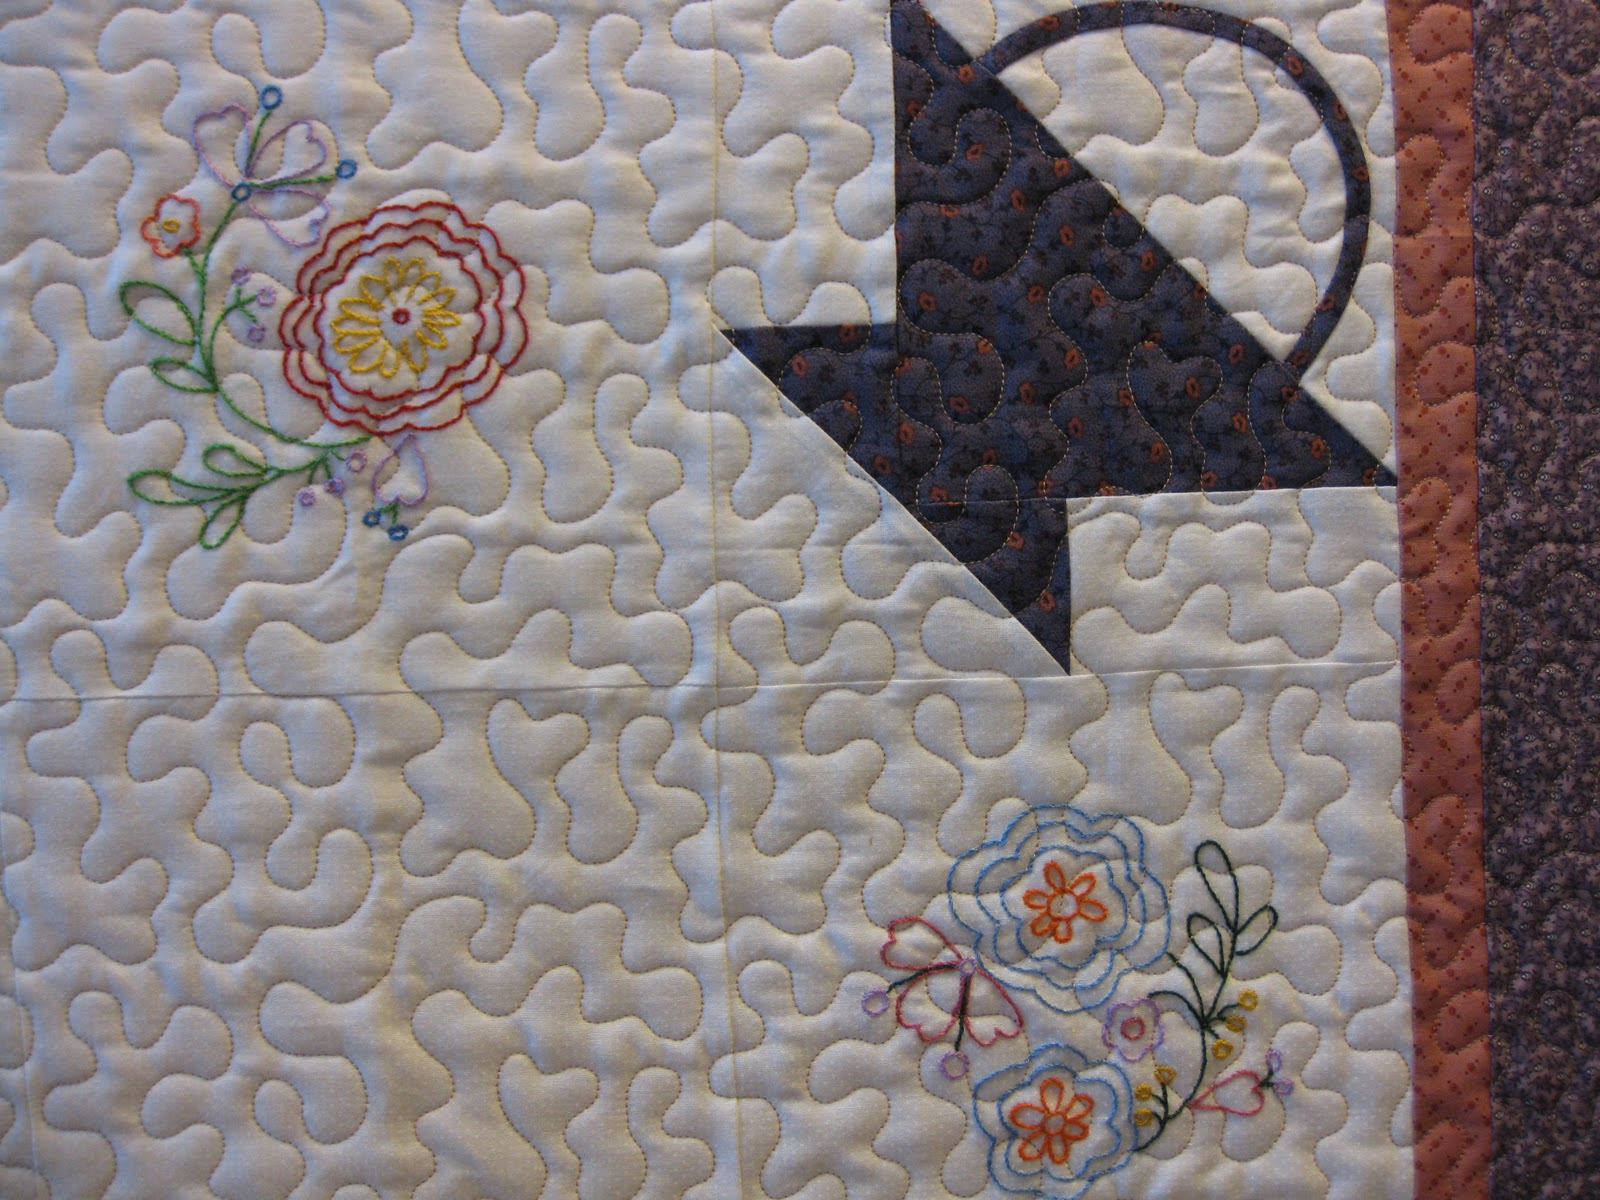 Millie S Quilting Chinese Coin Quilt And Stipple Quilting